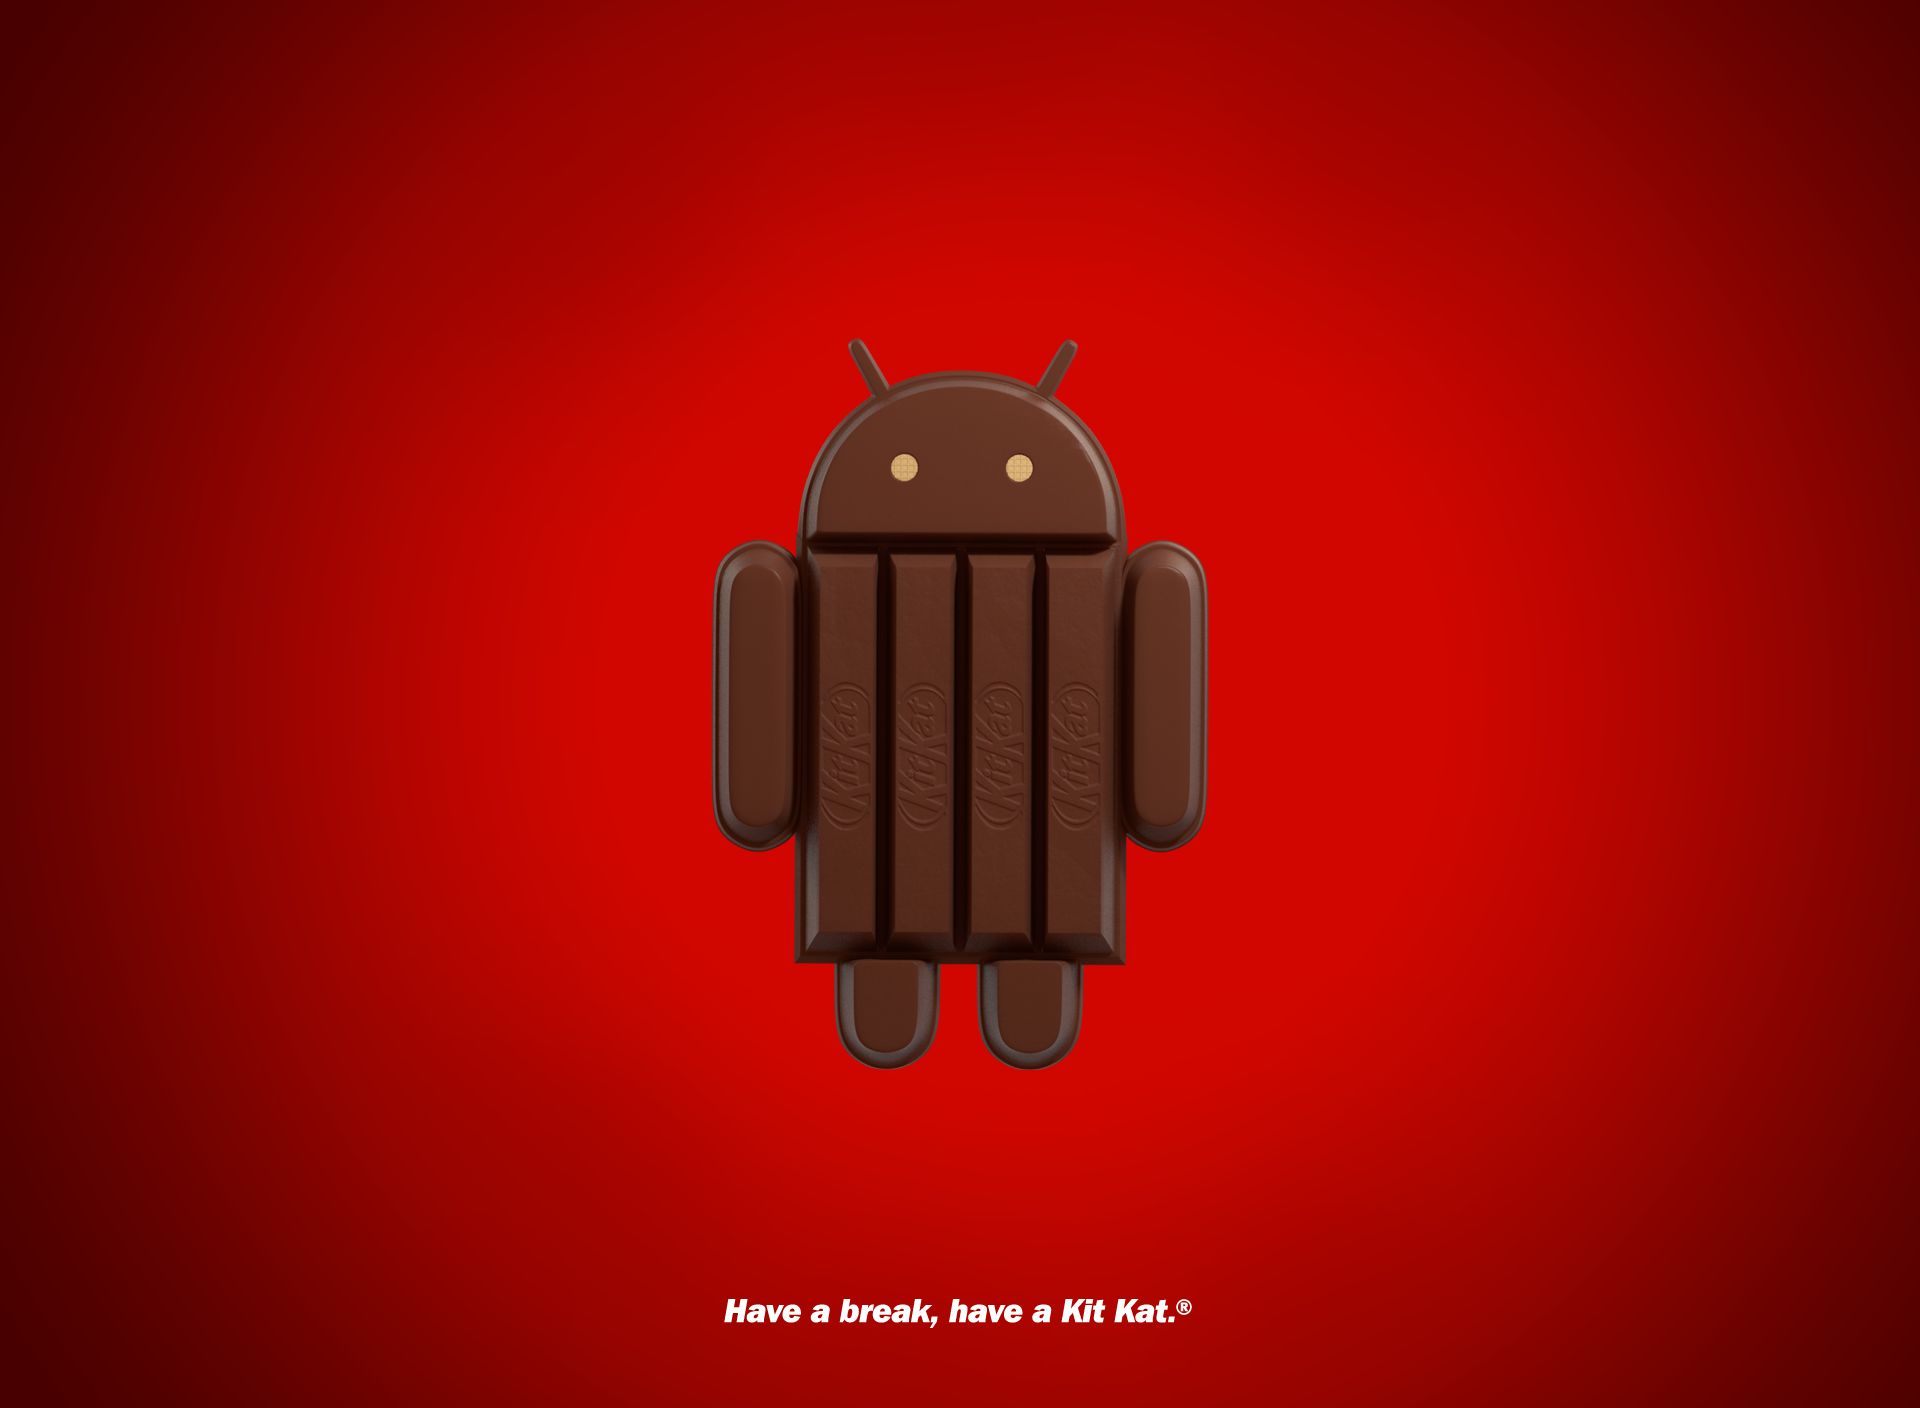 Android Kit Kat Wallpaper Android kitkat nestle 44 Android 1920x1408